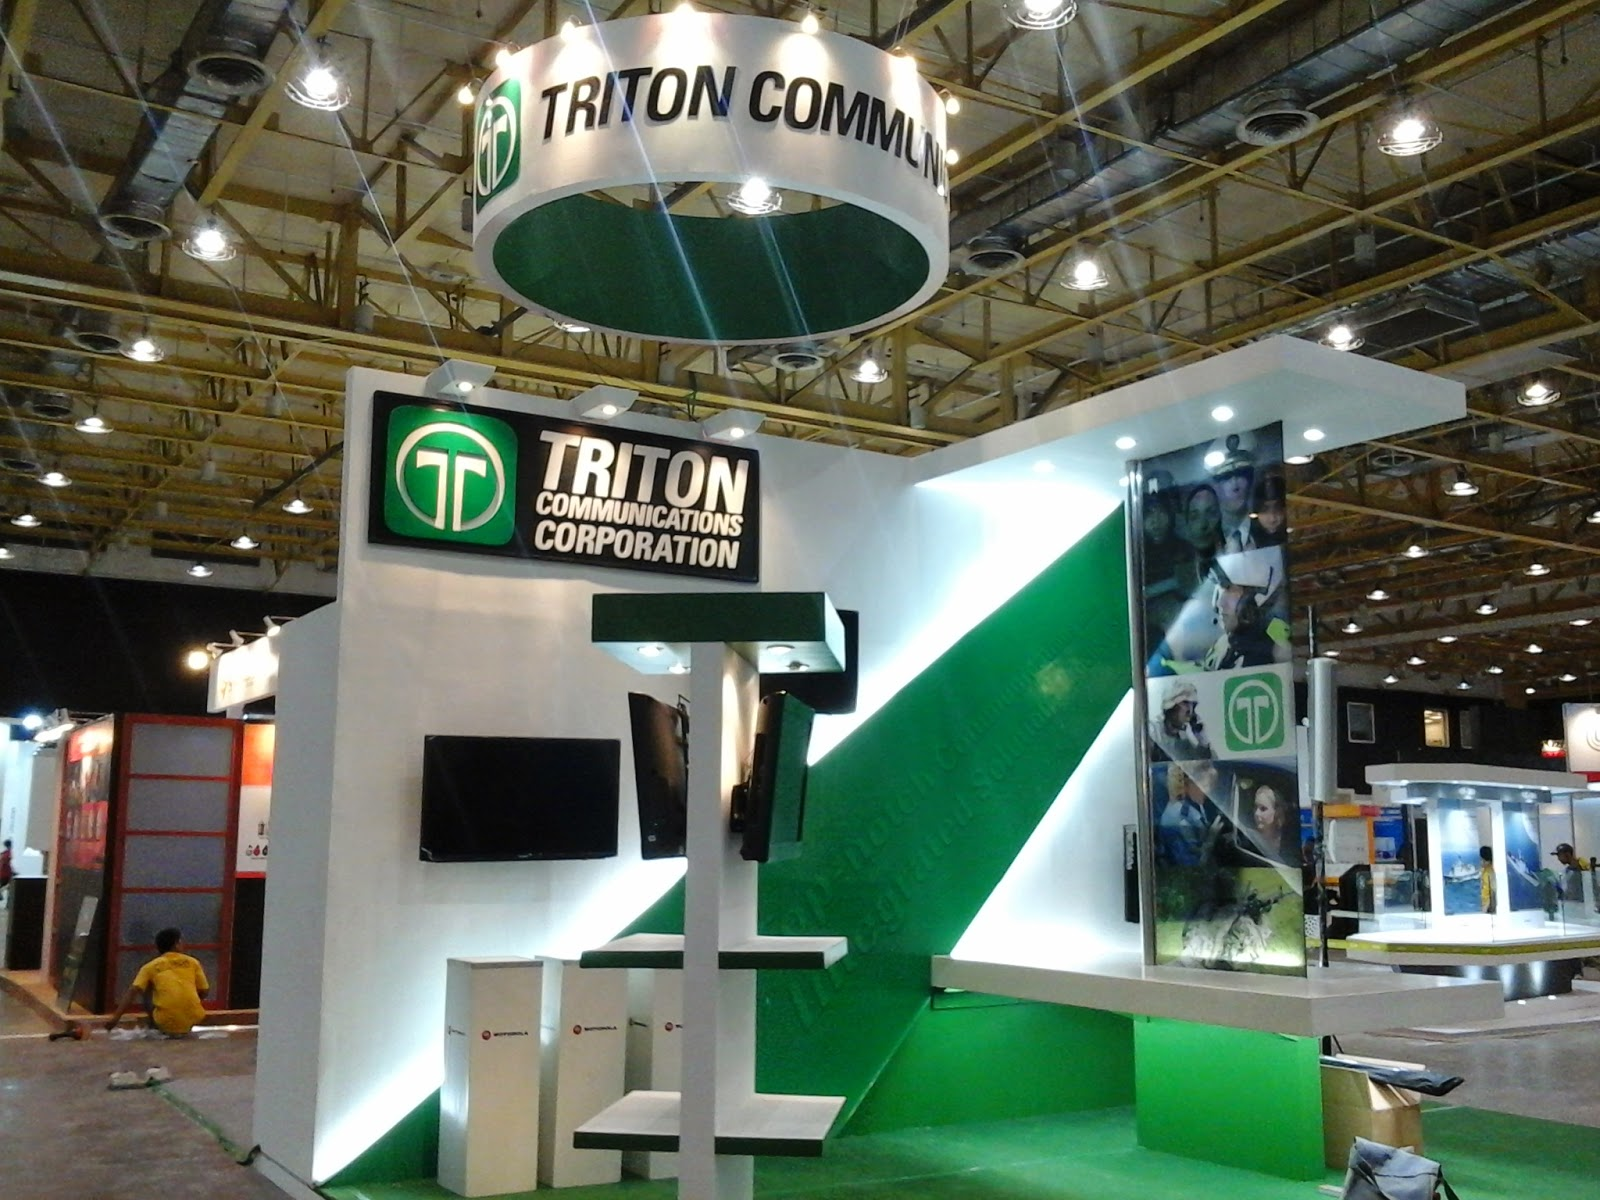 Side View of Triton Communications Corporation Trade Show Booth